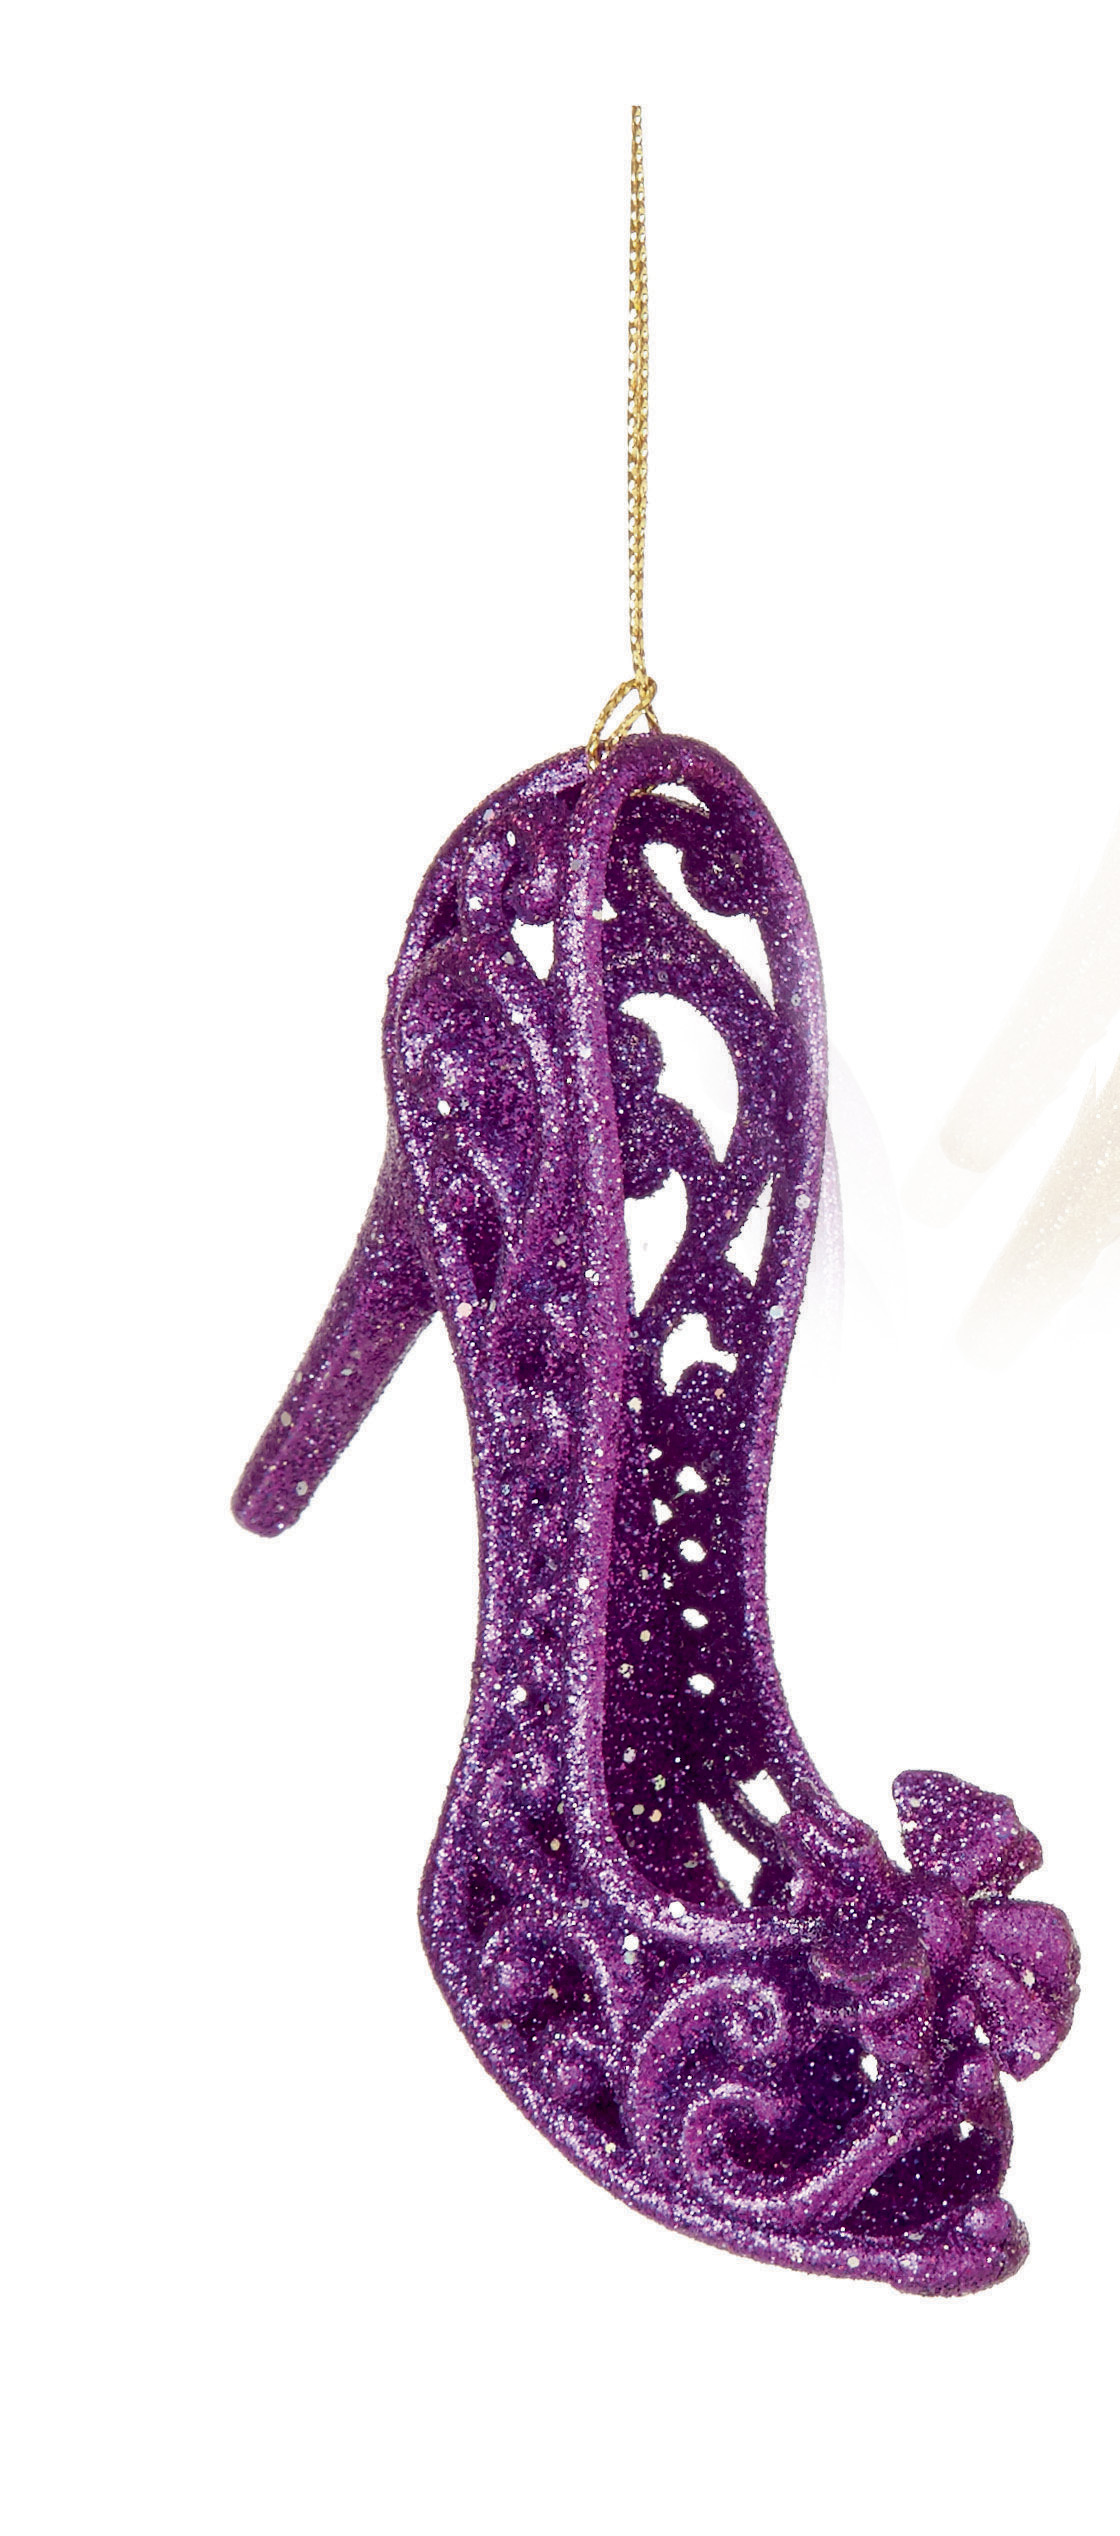 Purple Christmas Tree.Details About 3 X Purple 3d Shoe Hanging Decorations Baubles Christmas Tree Hanging Decoration